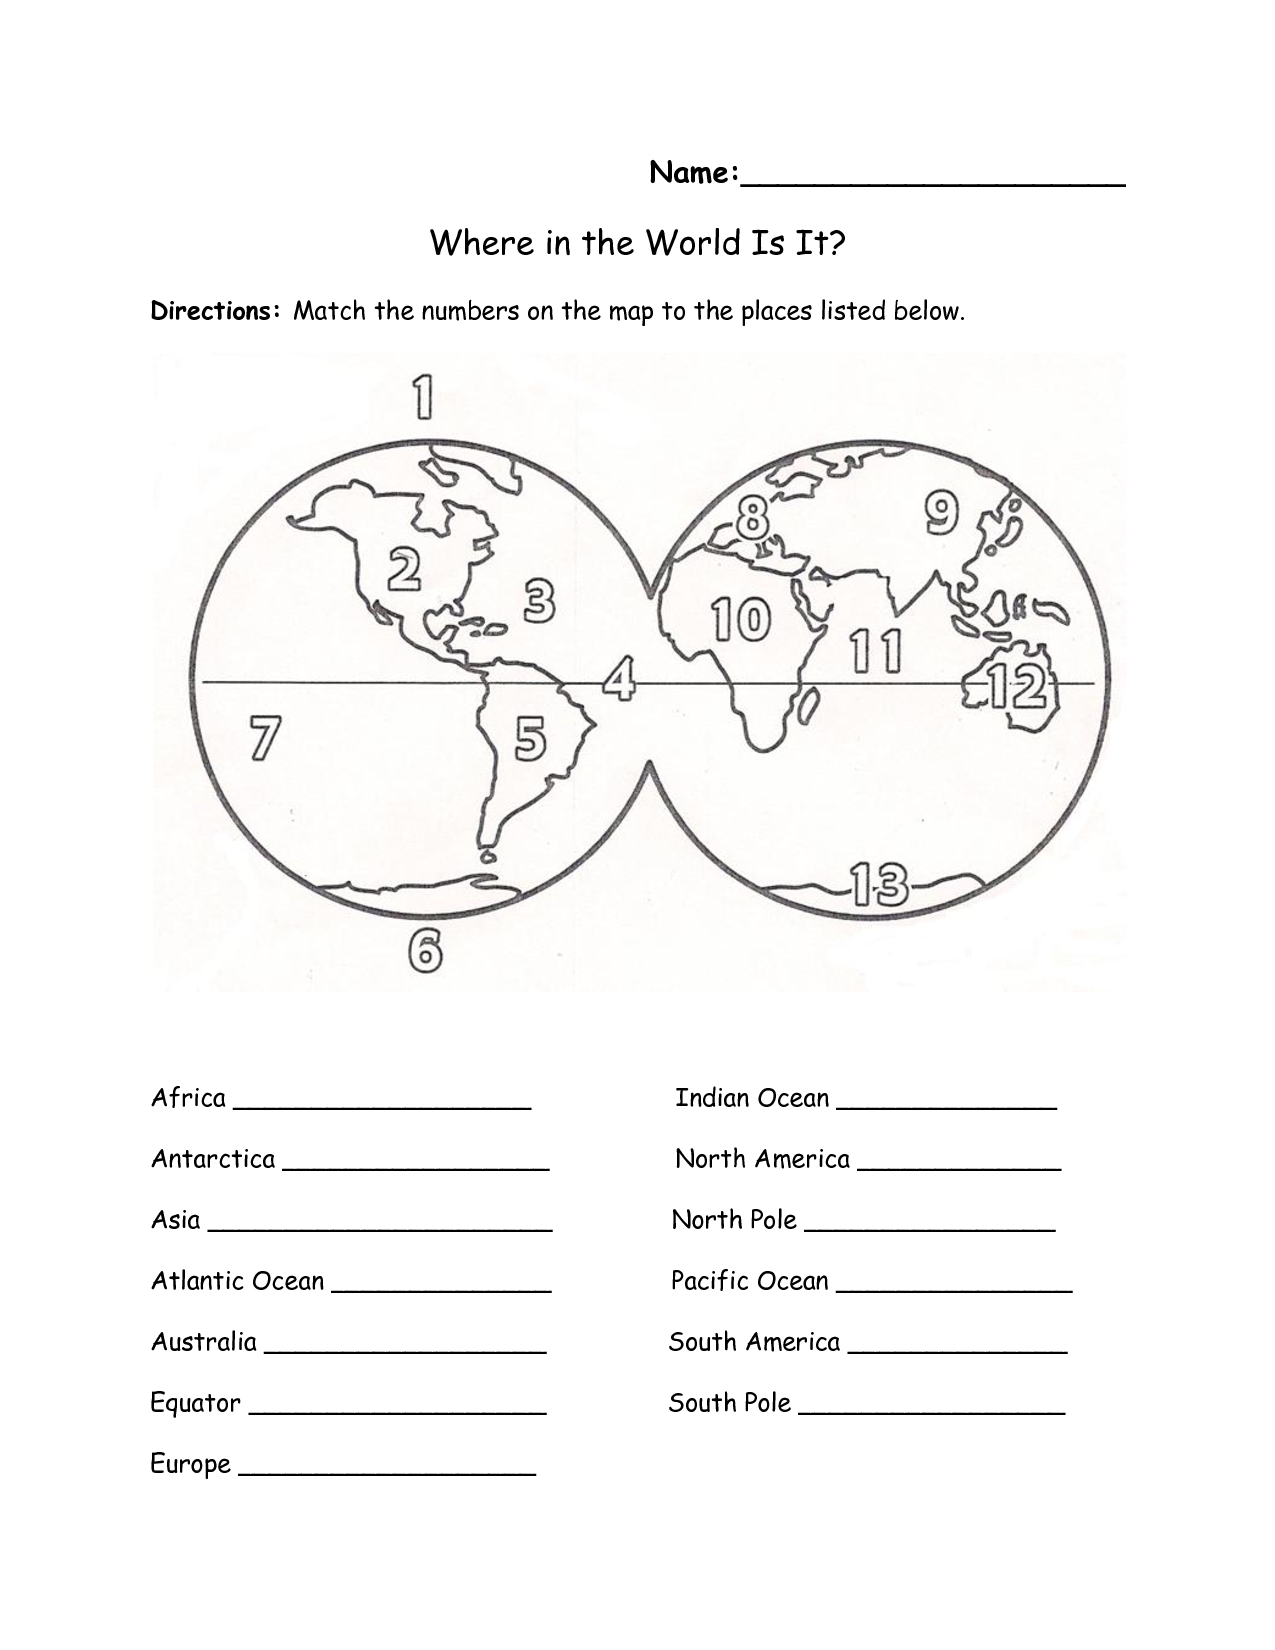 Printables Continents And Oceans Of The World Worksheet B Bcffcae659c3d33e725